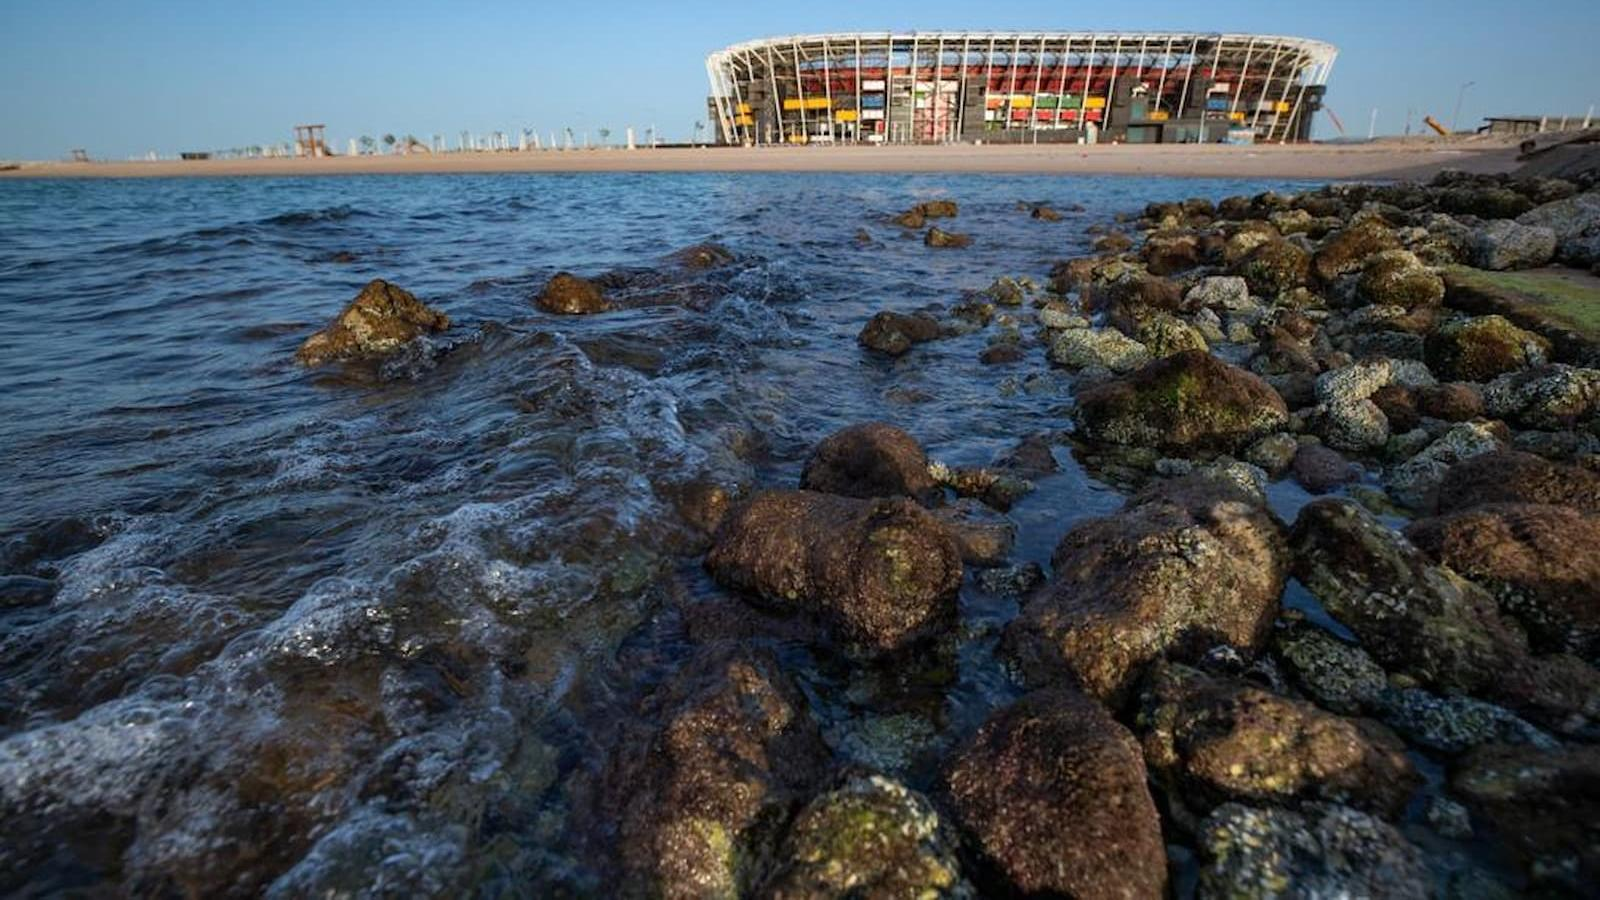 A symbol of innovation and sustainability: Ras Abu Aboud Stadium comes to life